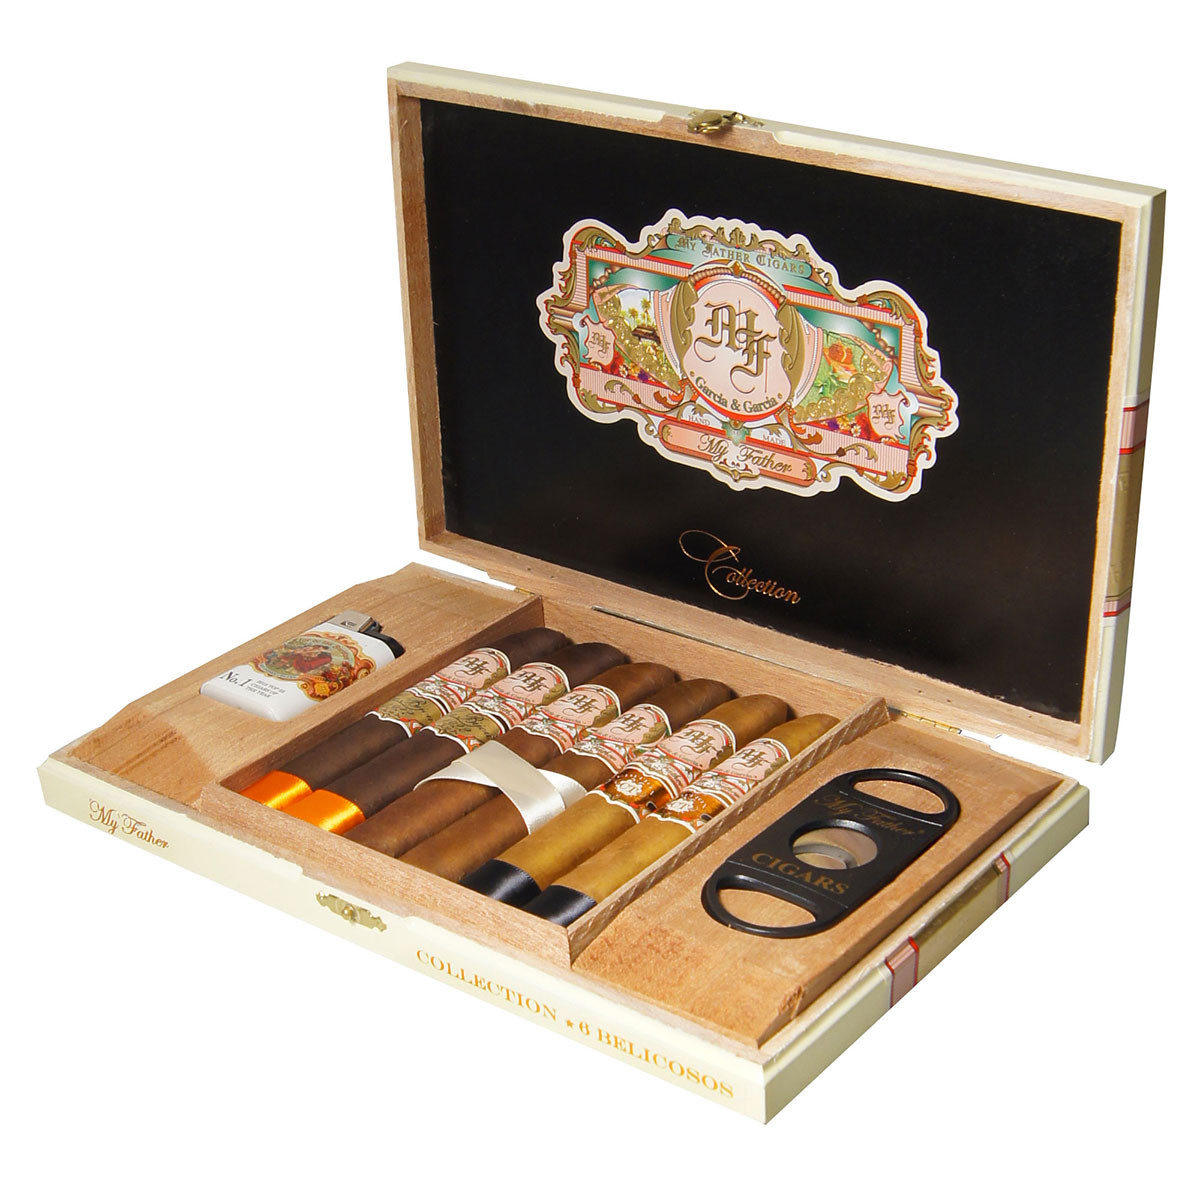 sc 1 st  Cuban Crafters & My Father Collection Belicoso Cigar Gift Pack - CUBAN CRAFTERS